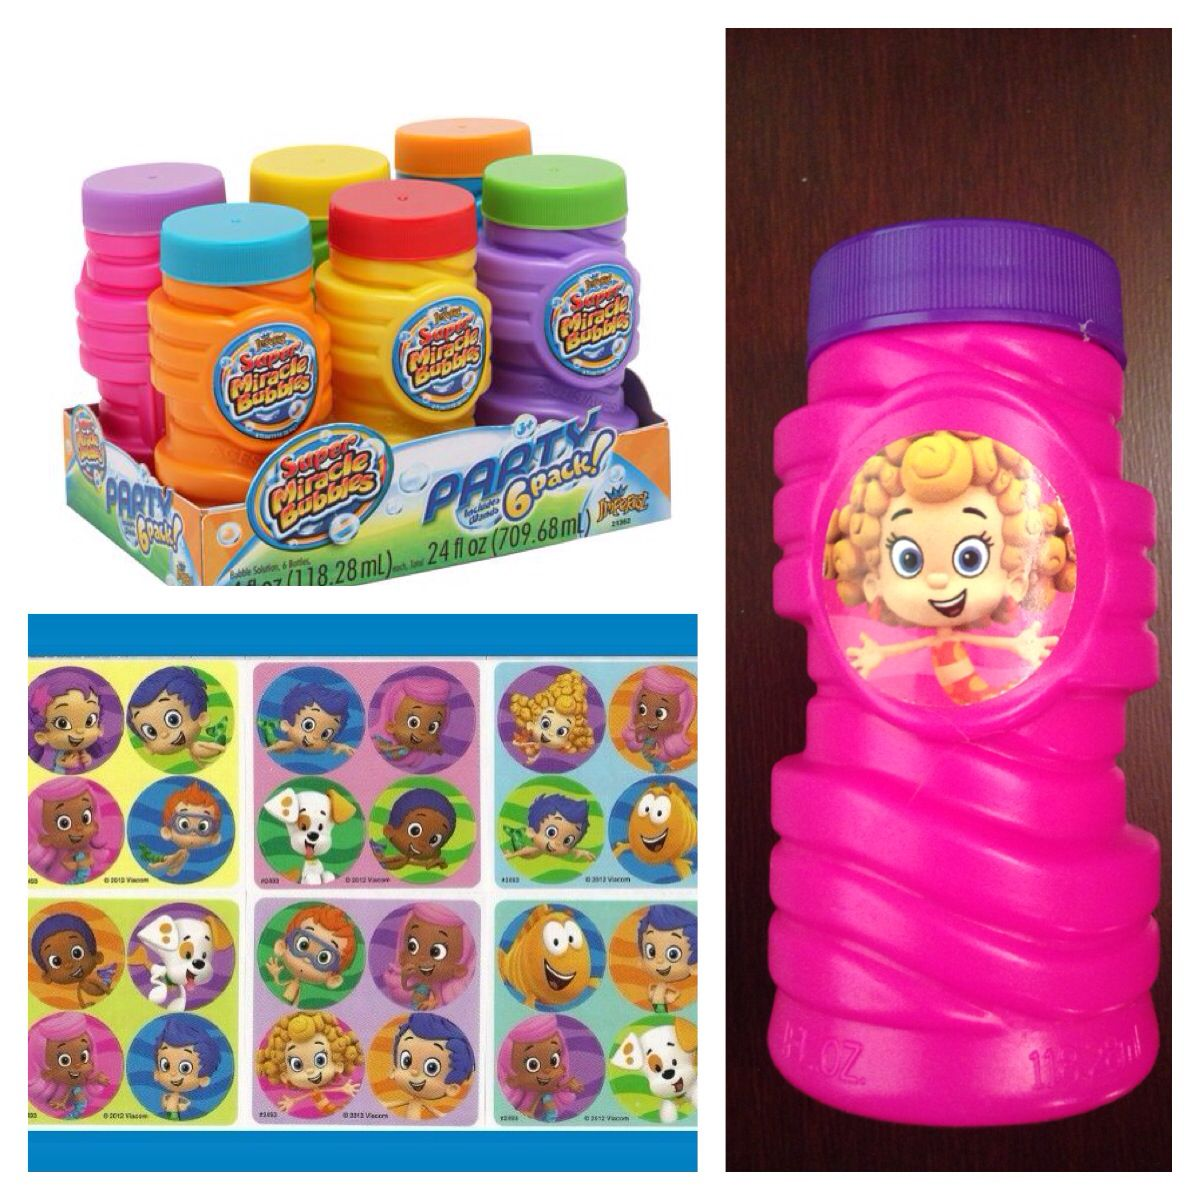 Bubble guppies birthday party treat party favor using bubbles bought from family dollar and - Bubble guppies party favors ideas ...